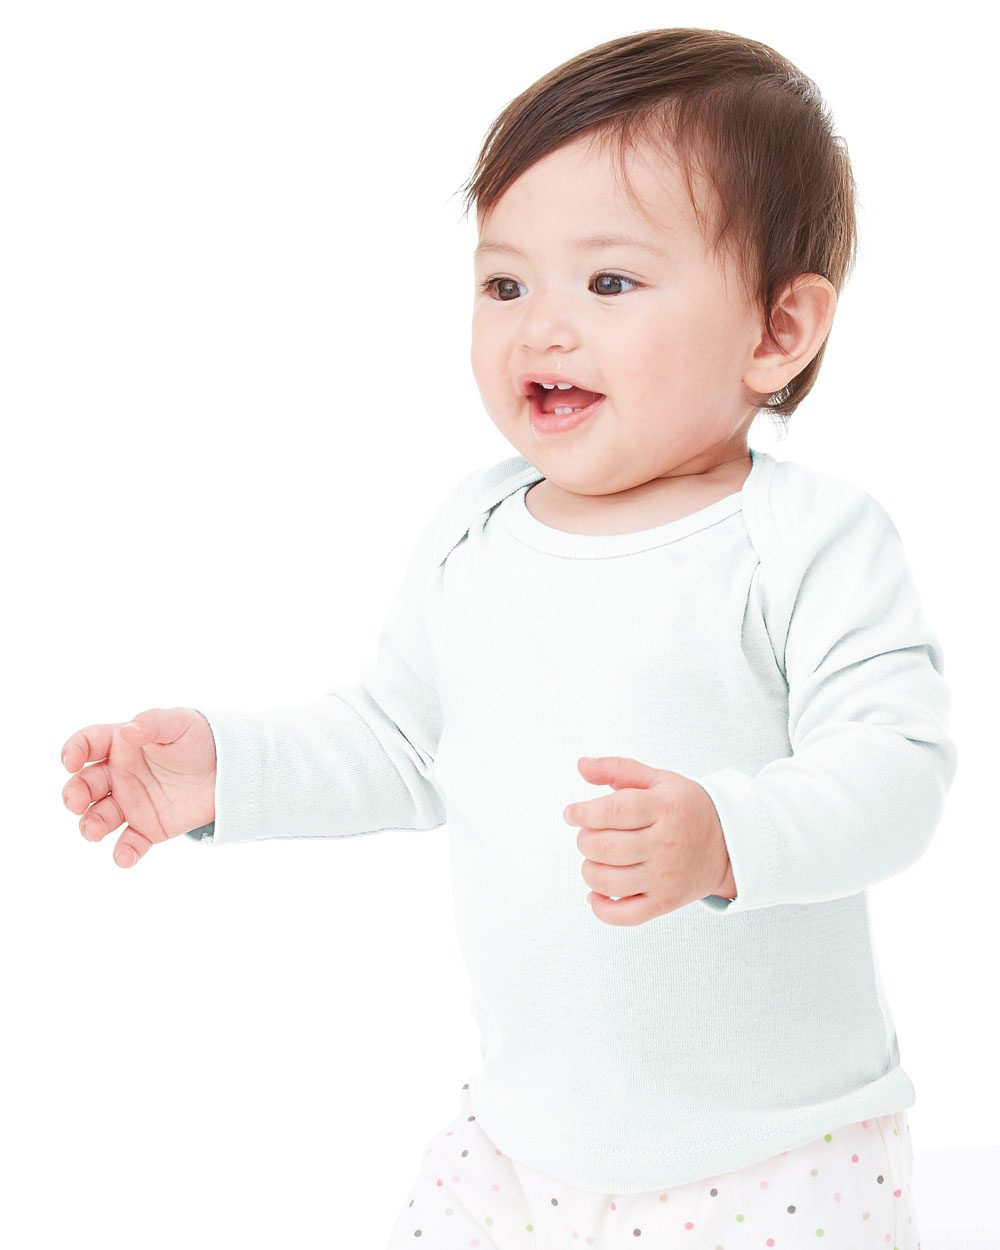 Shop for the best Infant baby t-shirts right here on Zazzle. Upgrade your child's wardrobe with our stylish baby shirts.